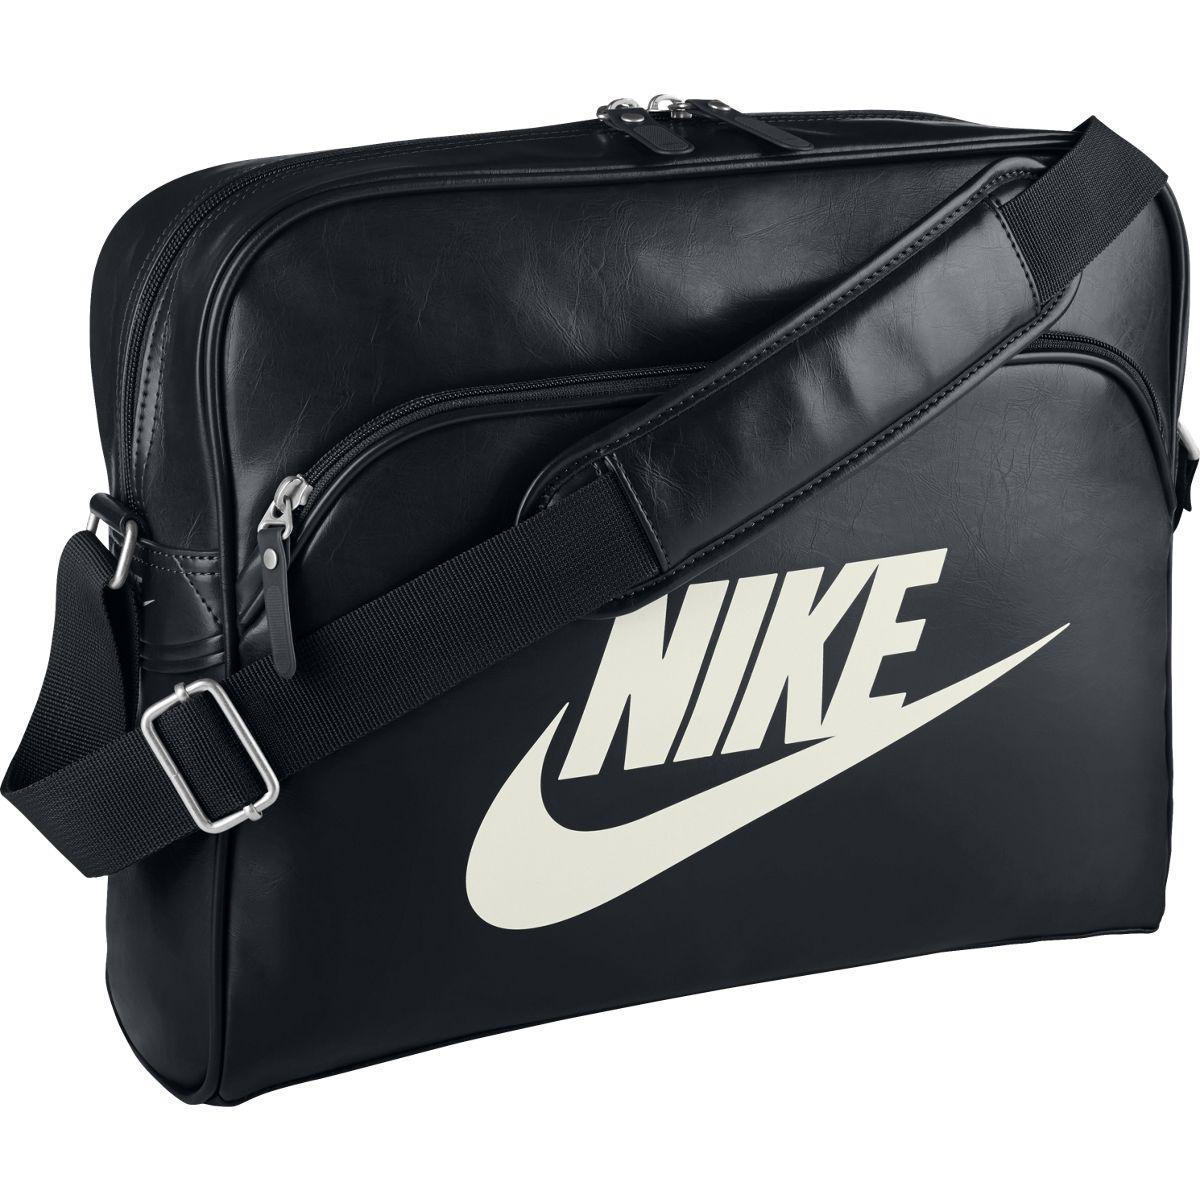 nike heritage shoulder bag black. Black Bedroom Furniture Sets. Home Design Ideas